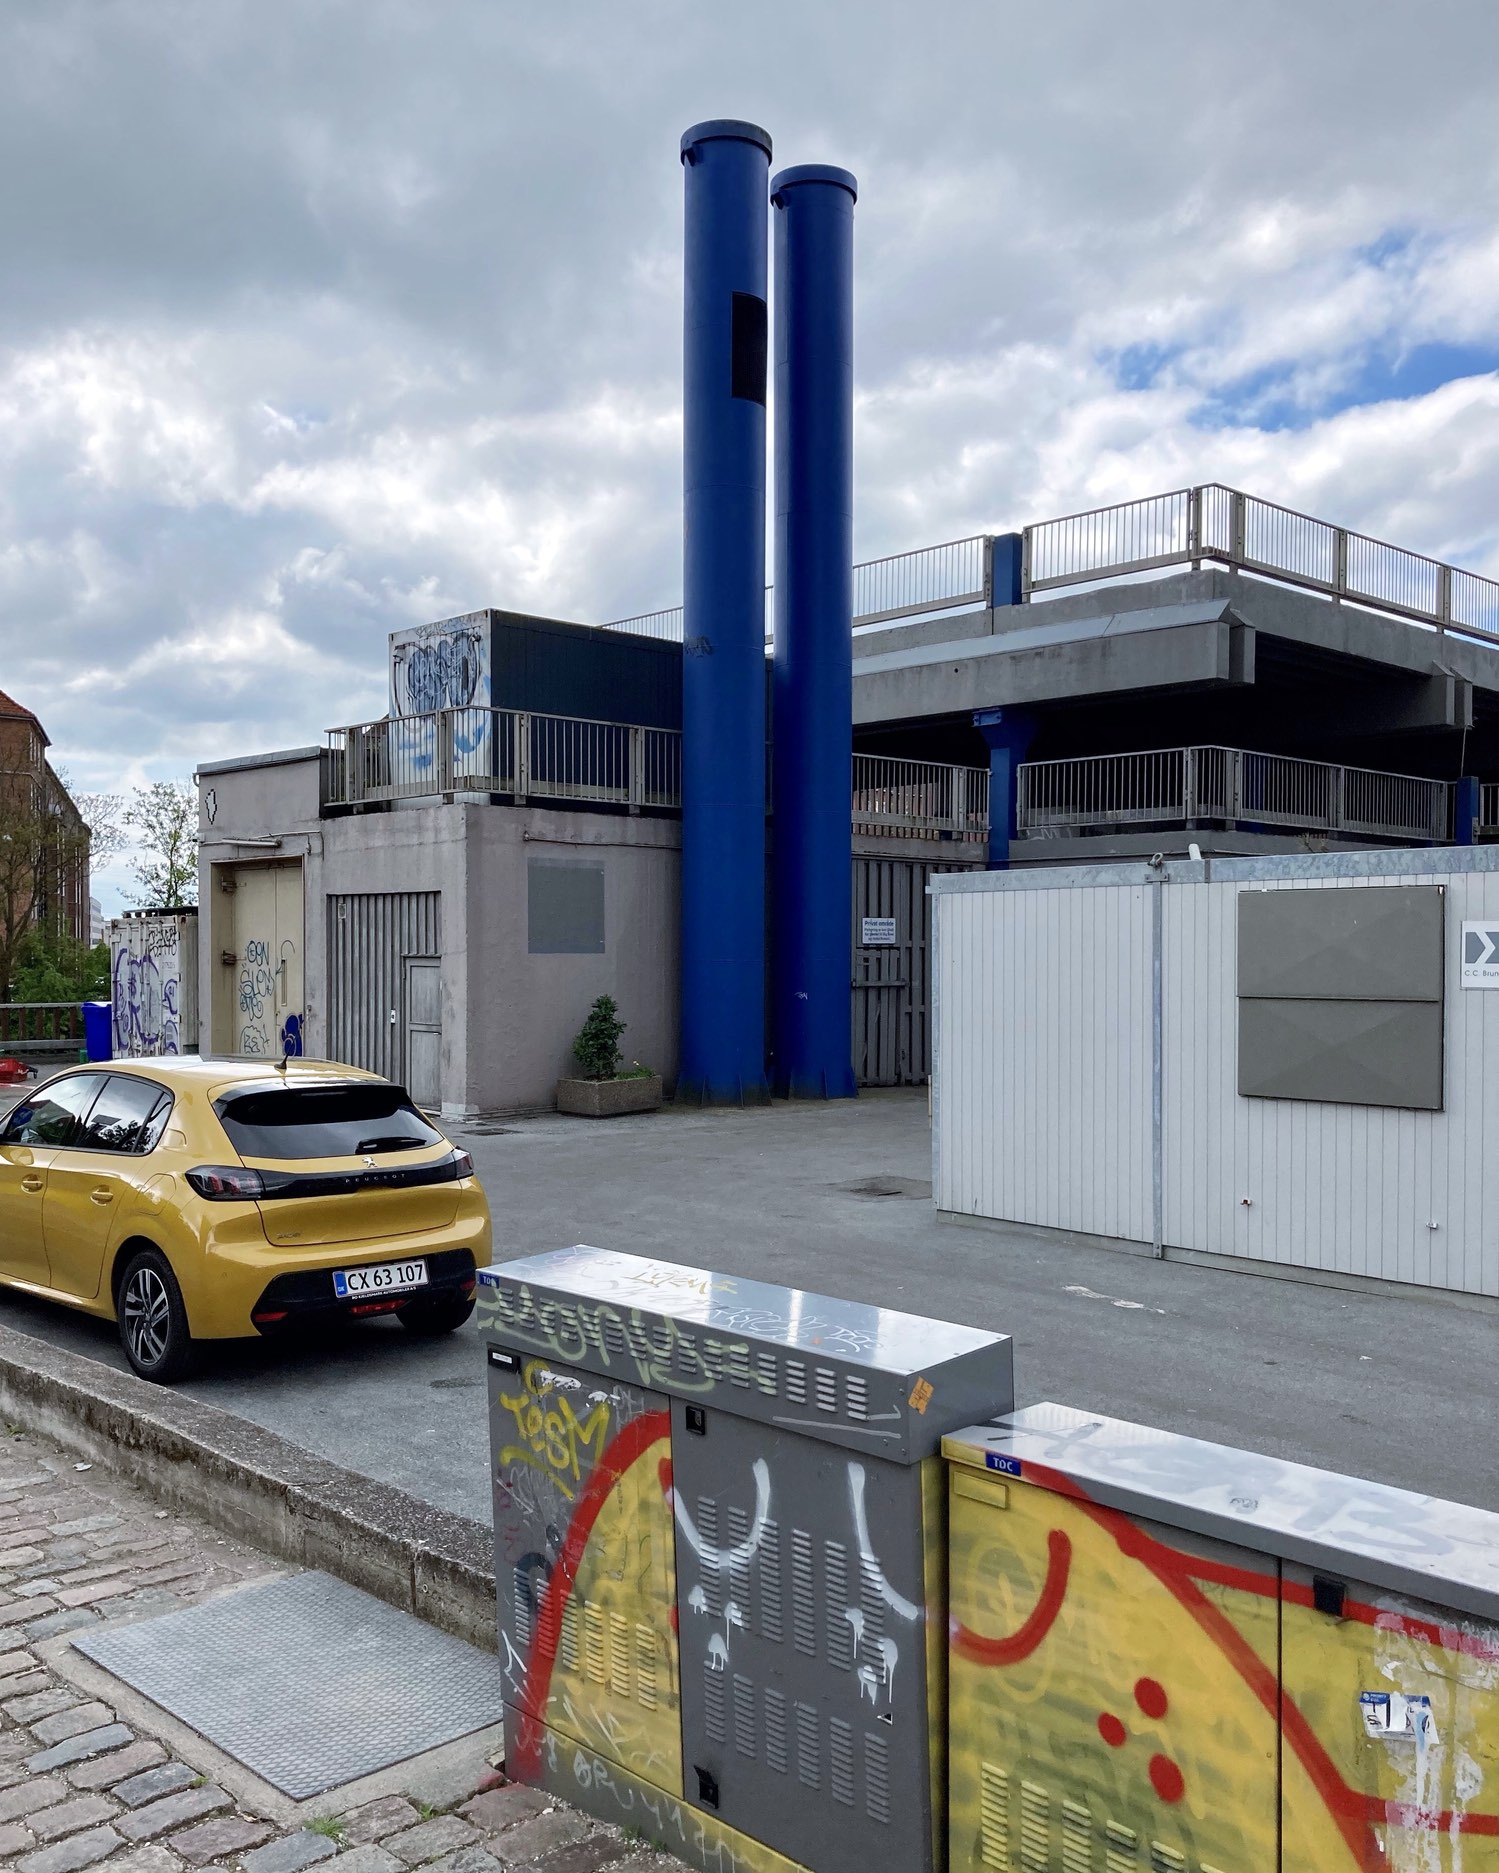 If it wasn't for the bronze-yellow of the car bringing out the yellow of SPYO's graffiti in contrast to the two blue chimneys reaching up against the grey-blue of the sky, I perhaps wouldn't have taken this photograph of what is otherwise a generally drab corner of Valby.